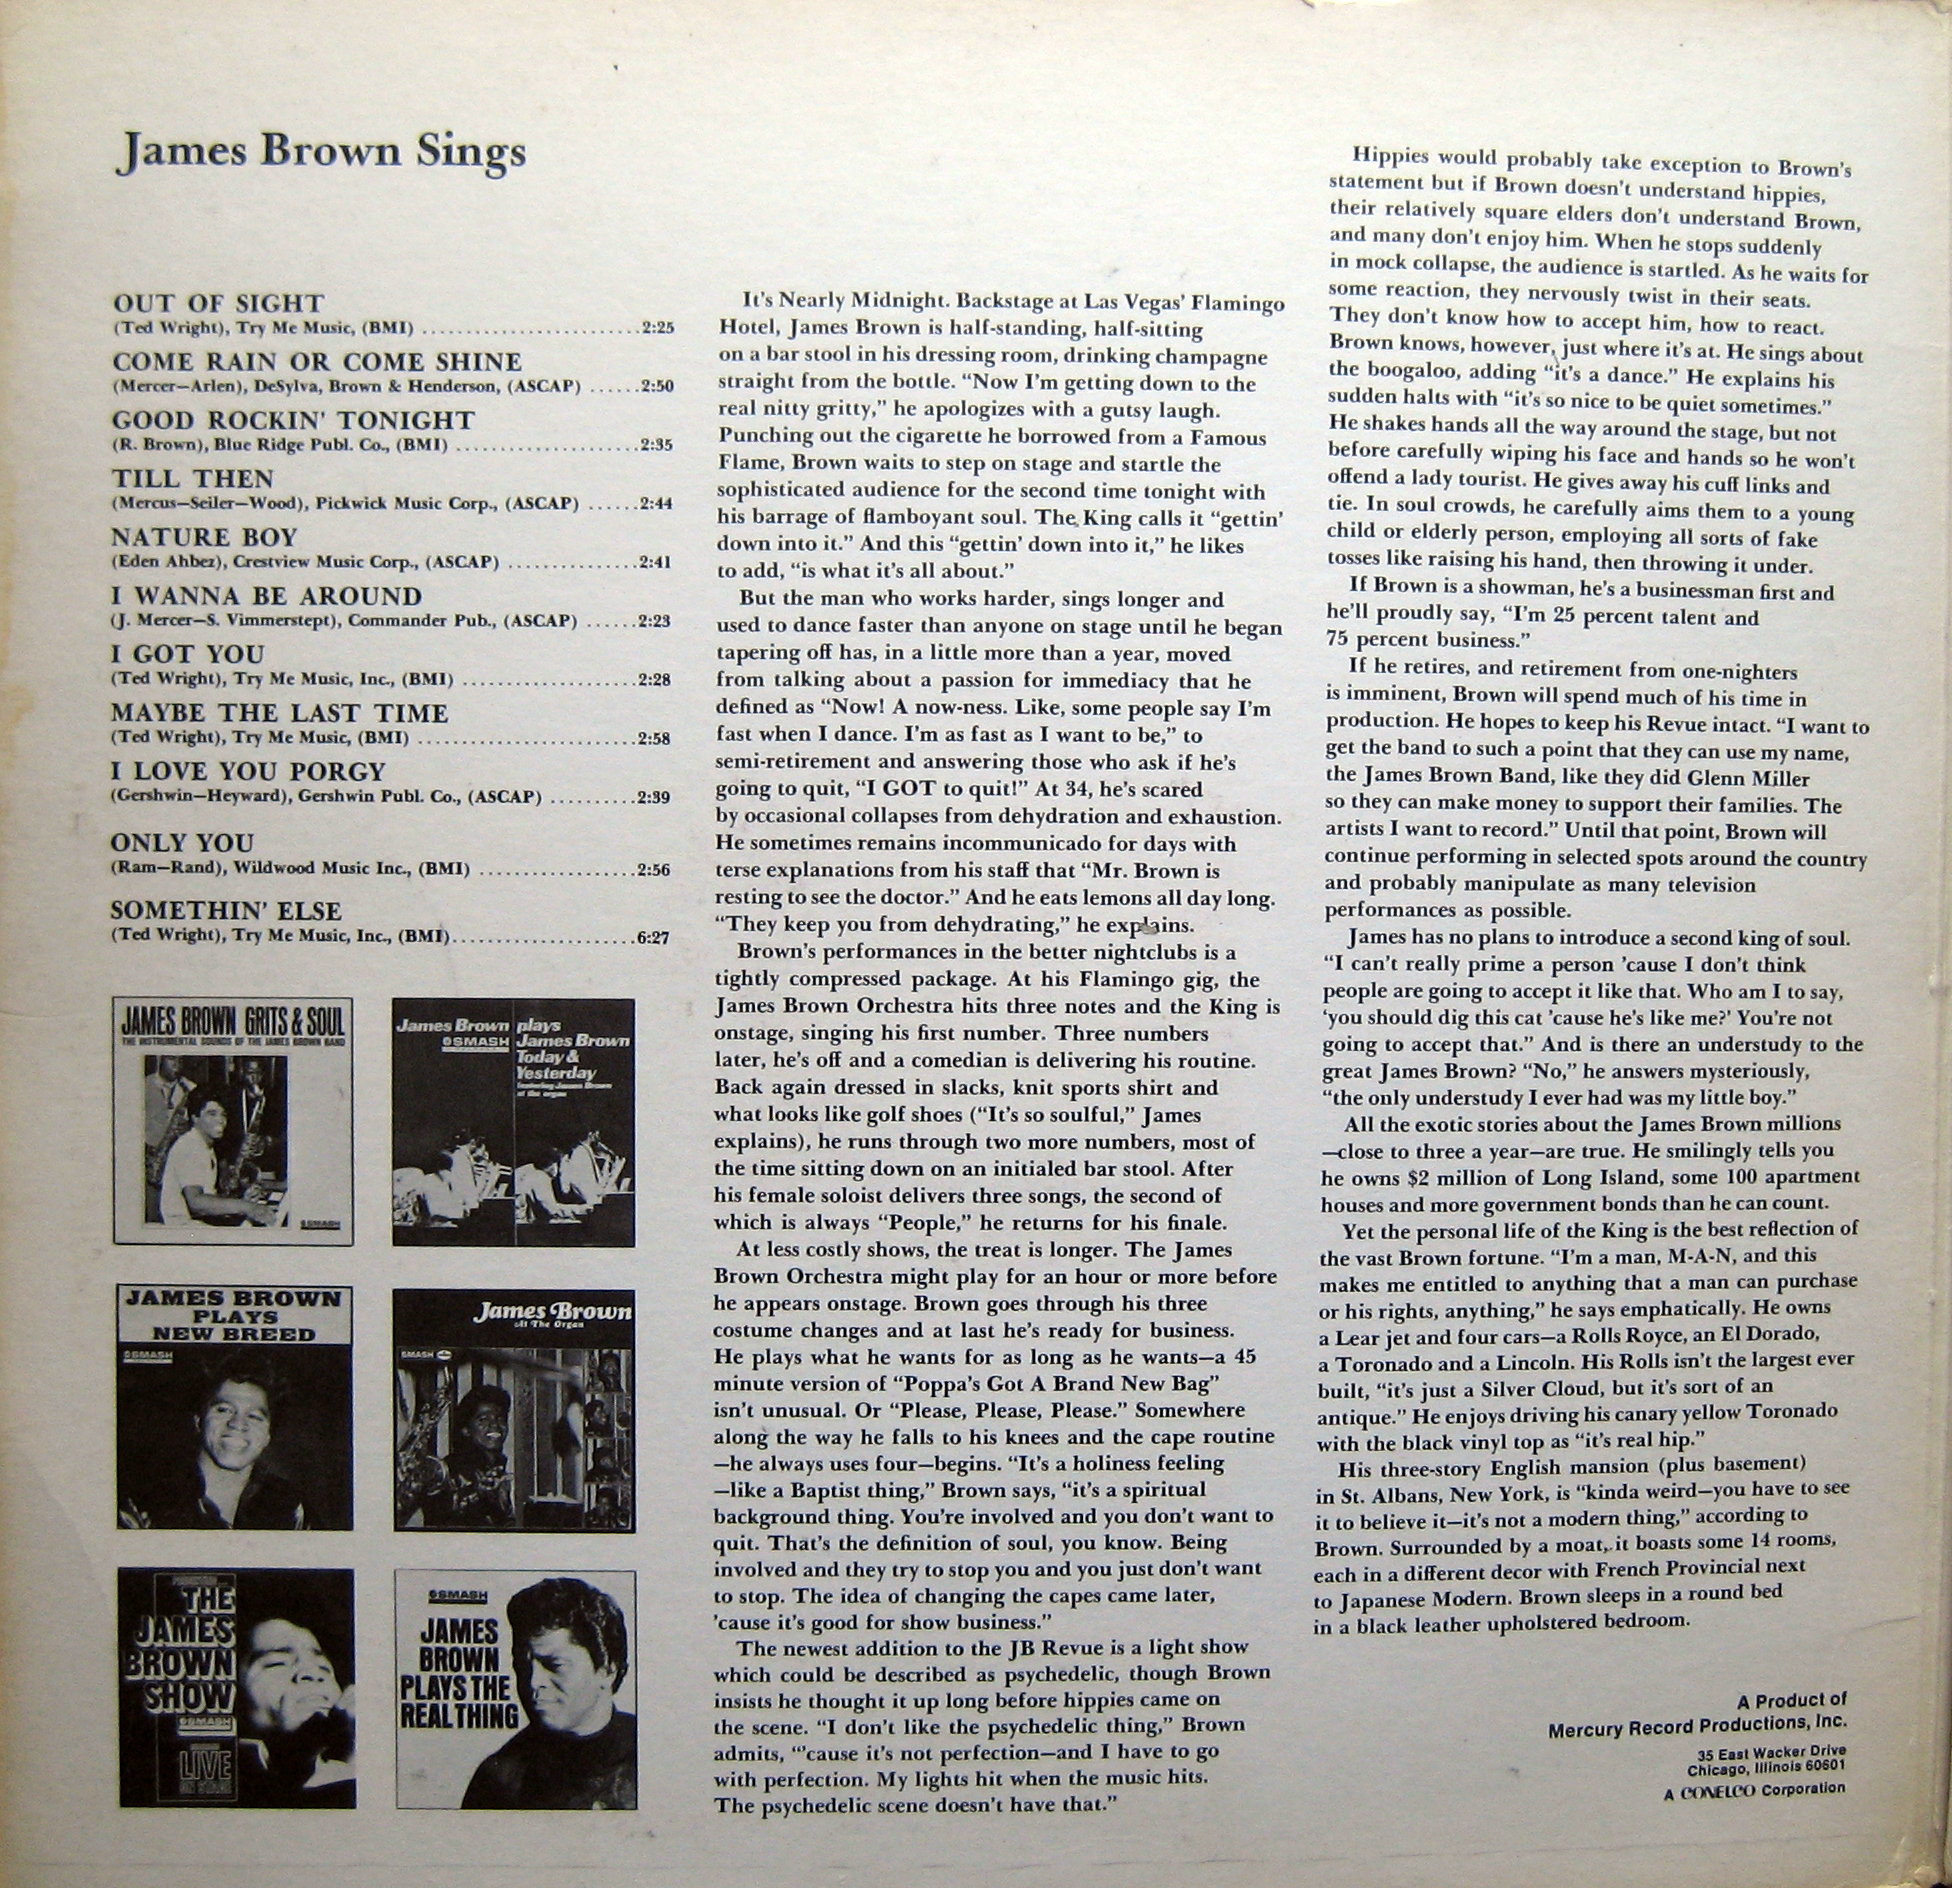 1968 Smash LP: James Brown Sings Out of Sight - Gatefold 1